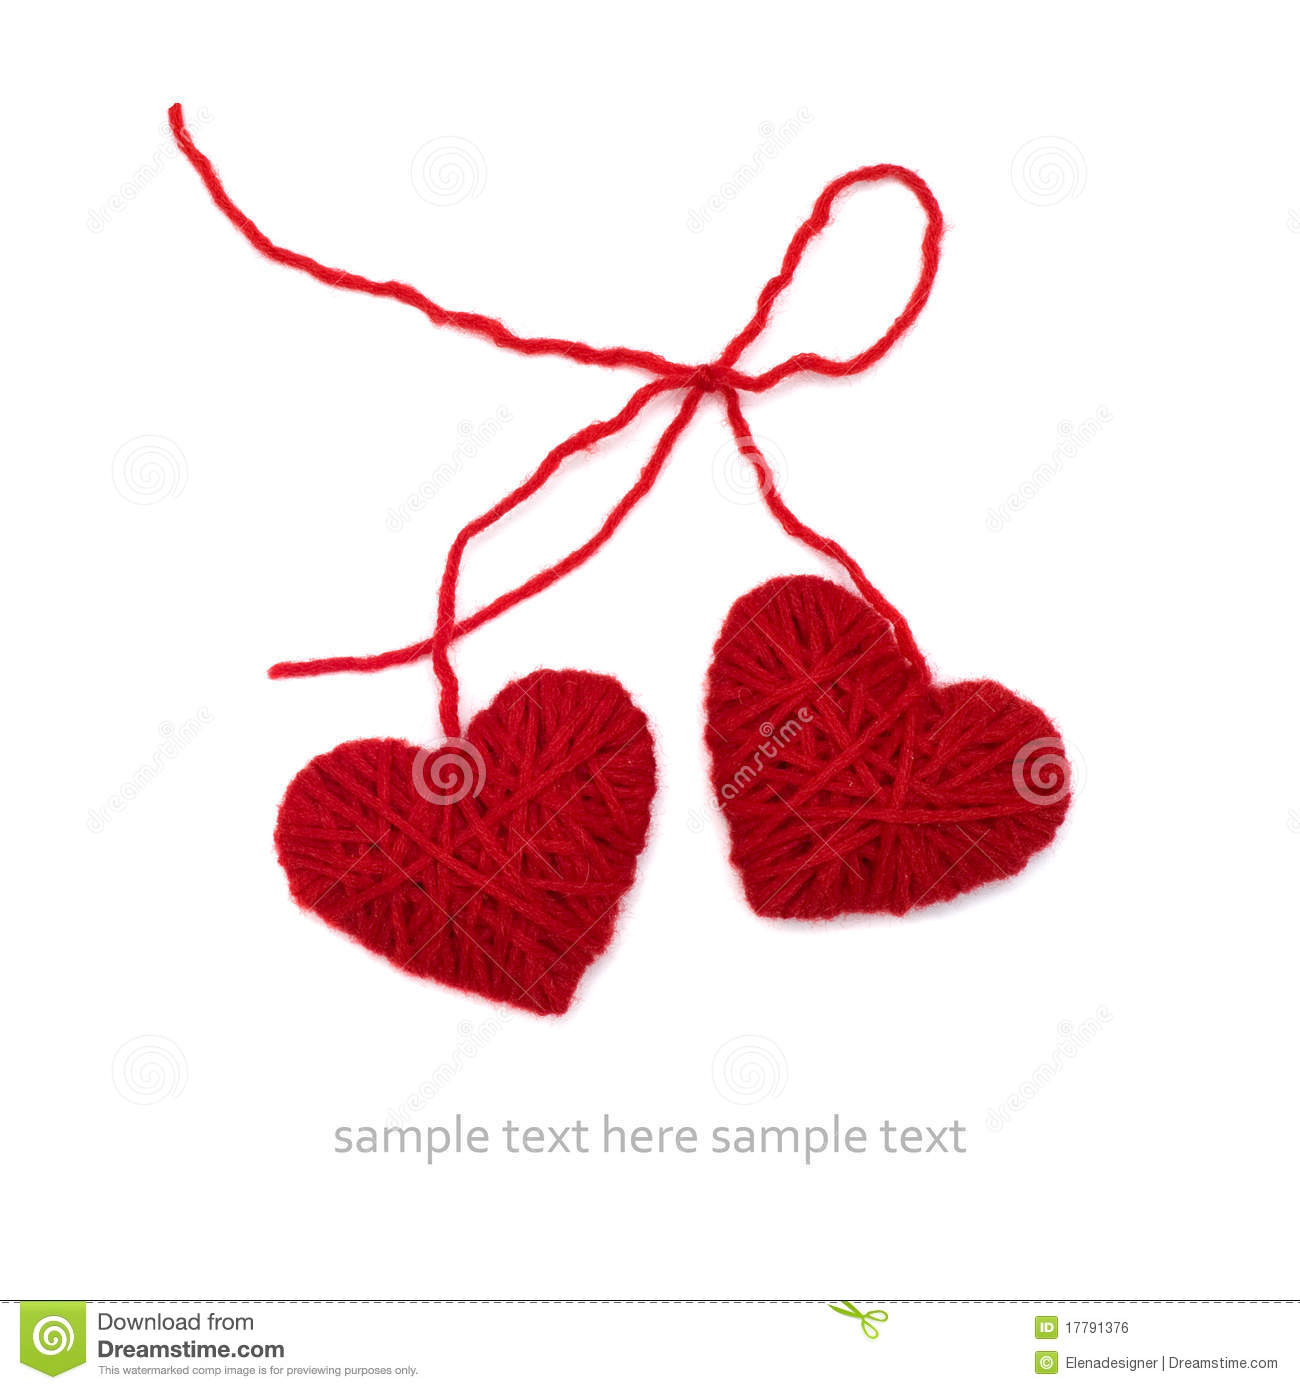 Knitting Hearts Together : Knitted hearts royalty free stock image